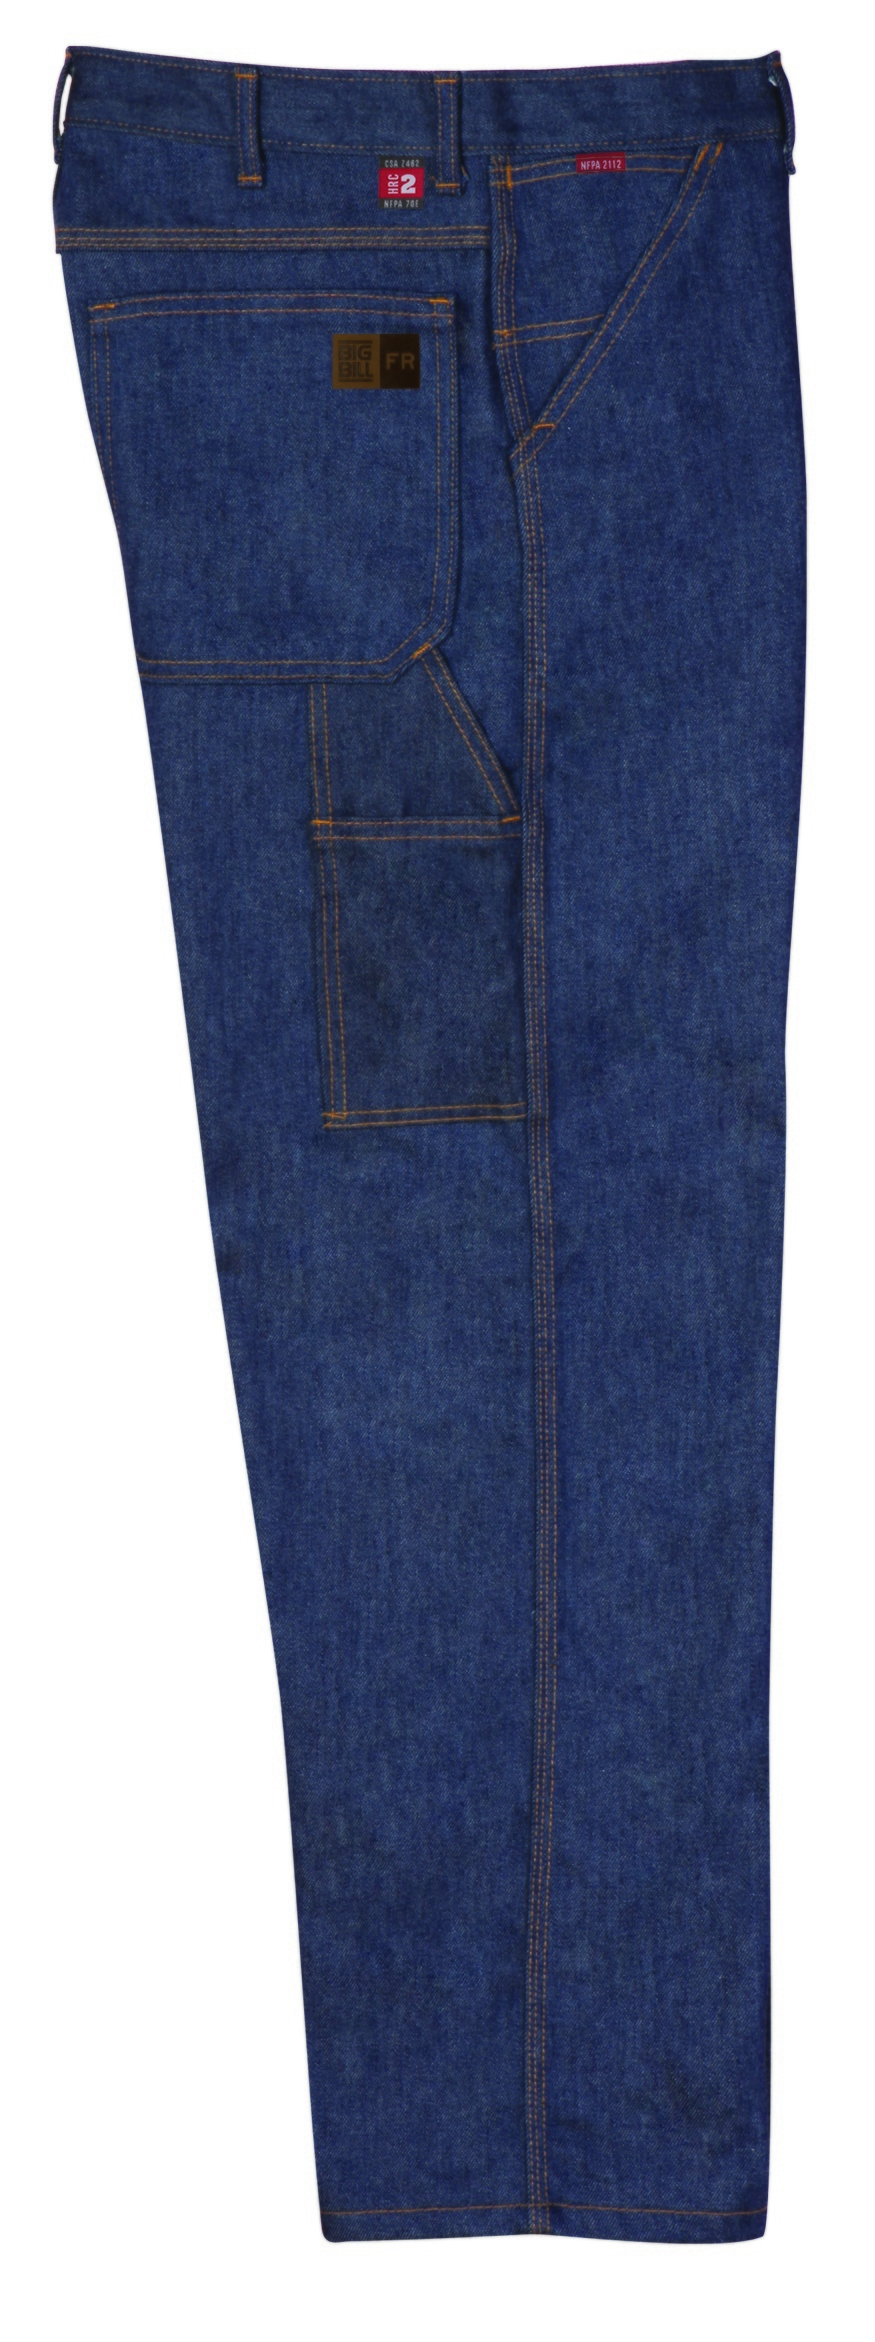 14 oz Indura Utility Jeans-BIG BILL